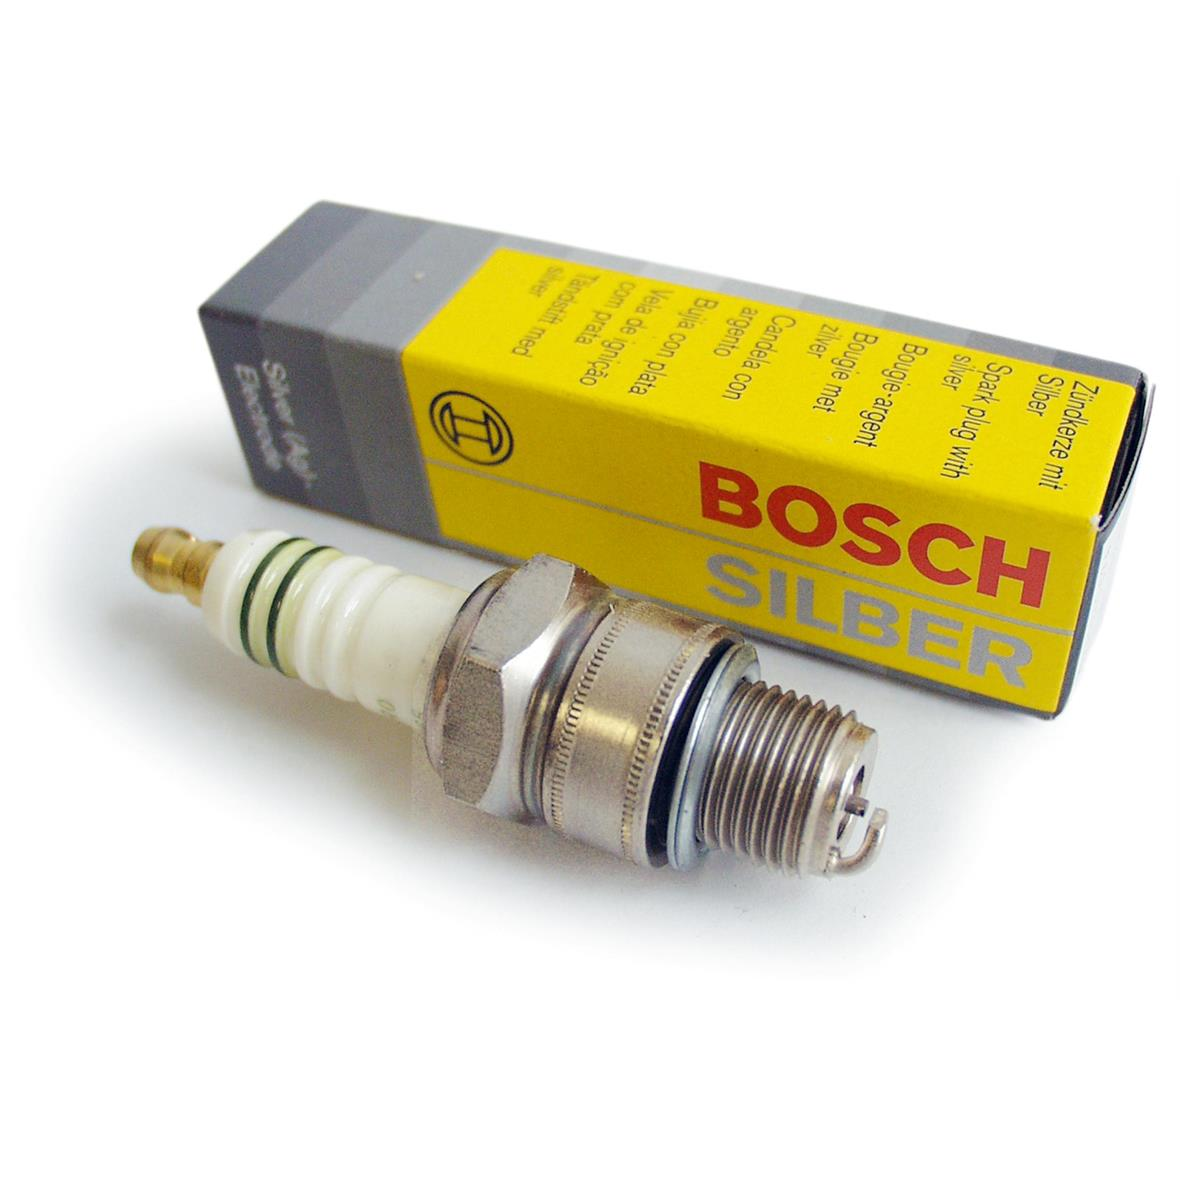 Product Image for 'Spark Plug BOSCH XR2CS silverTitle'